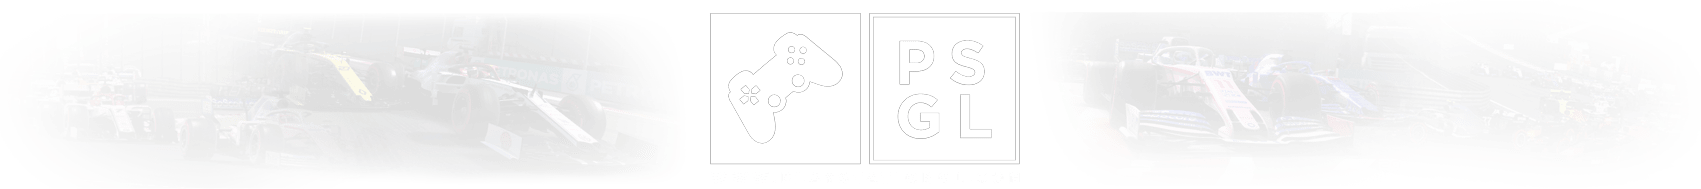 PlayStationGL